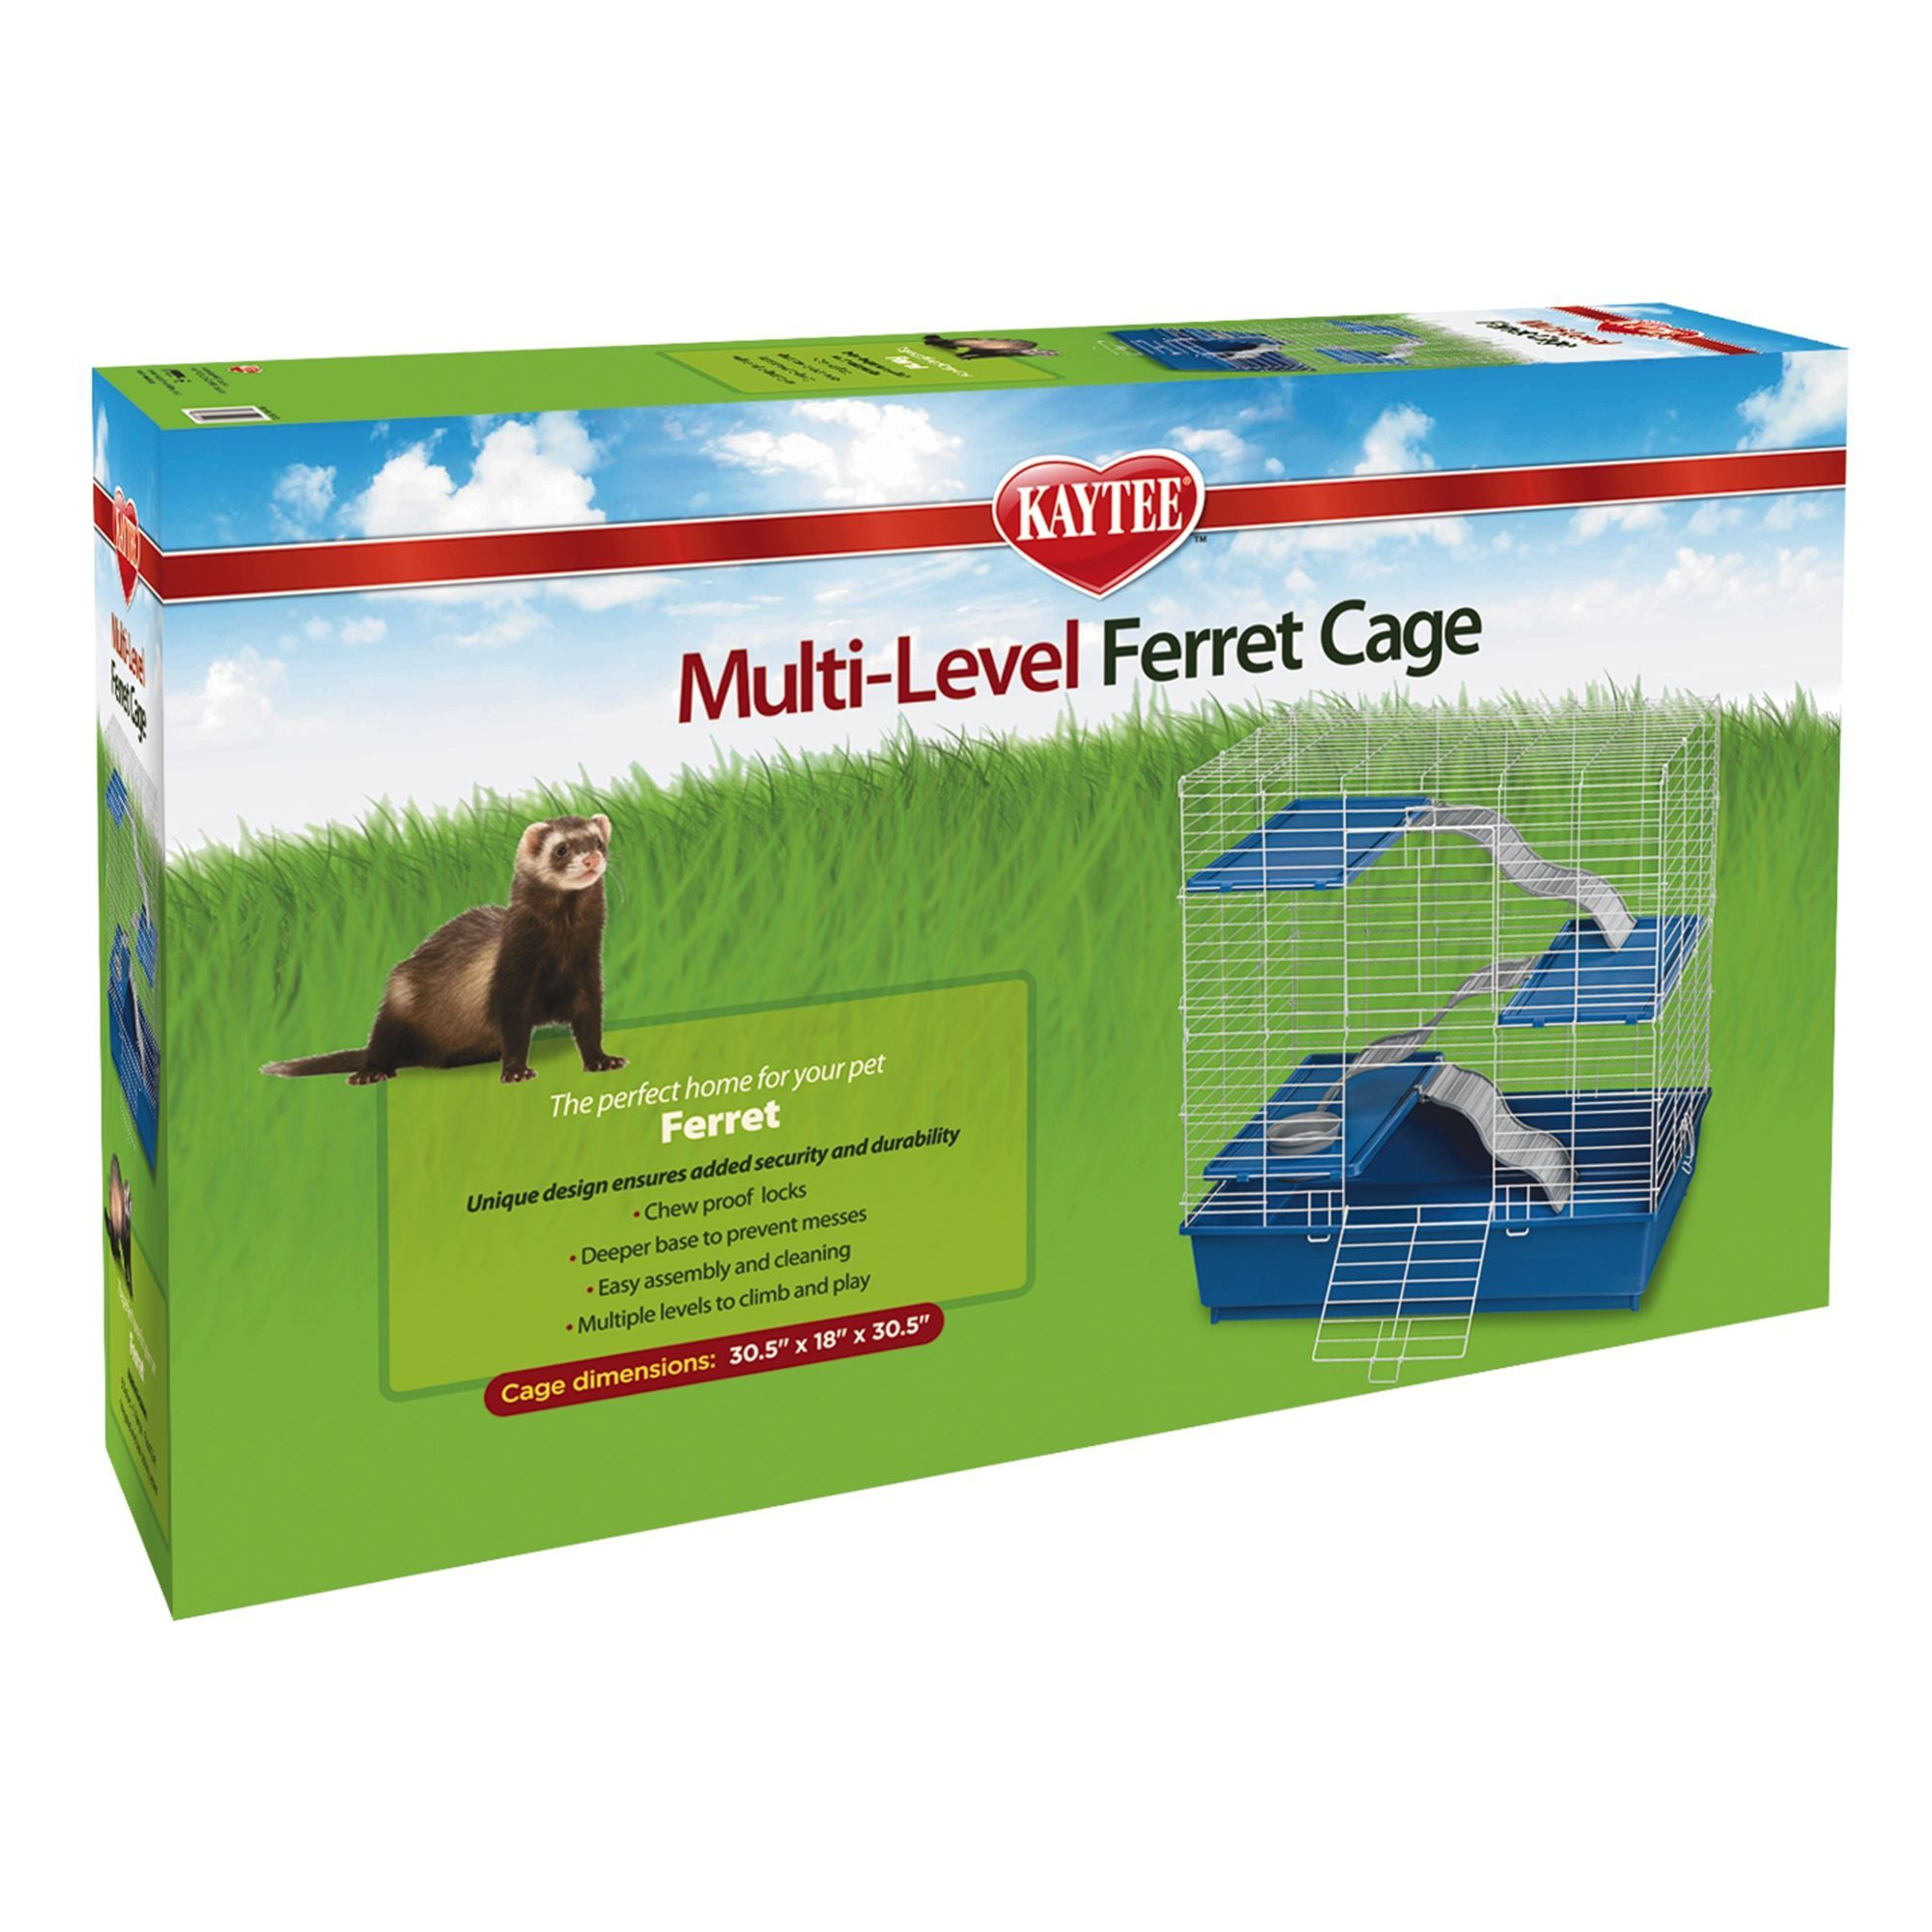 Kaytee Multi Level Ferret Cage Ferret Cage Ferret Pet Ferret